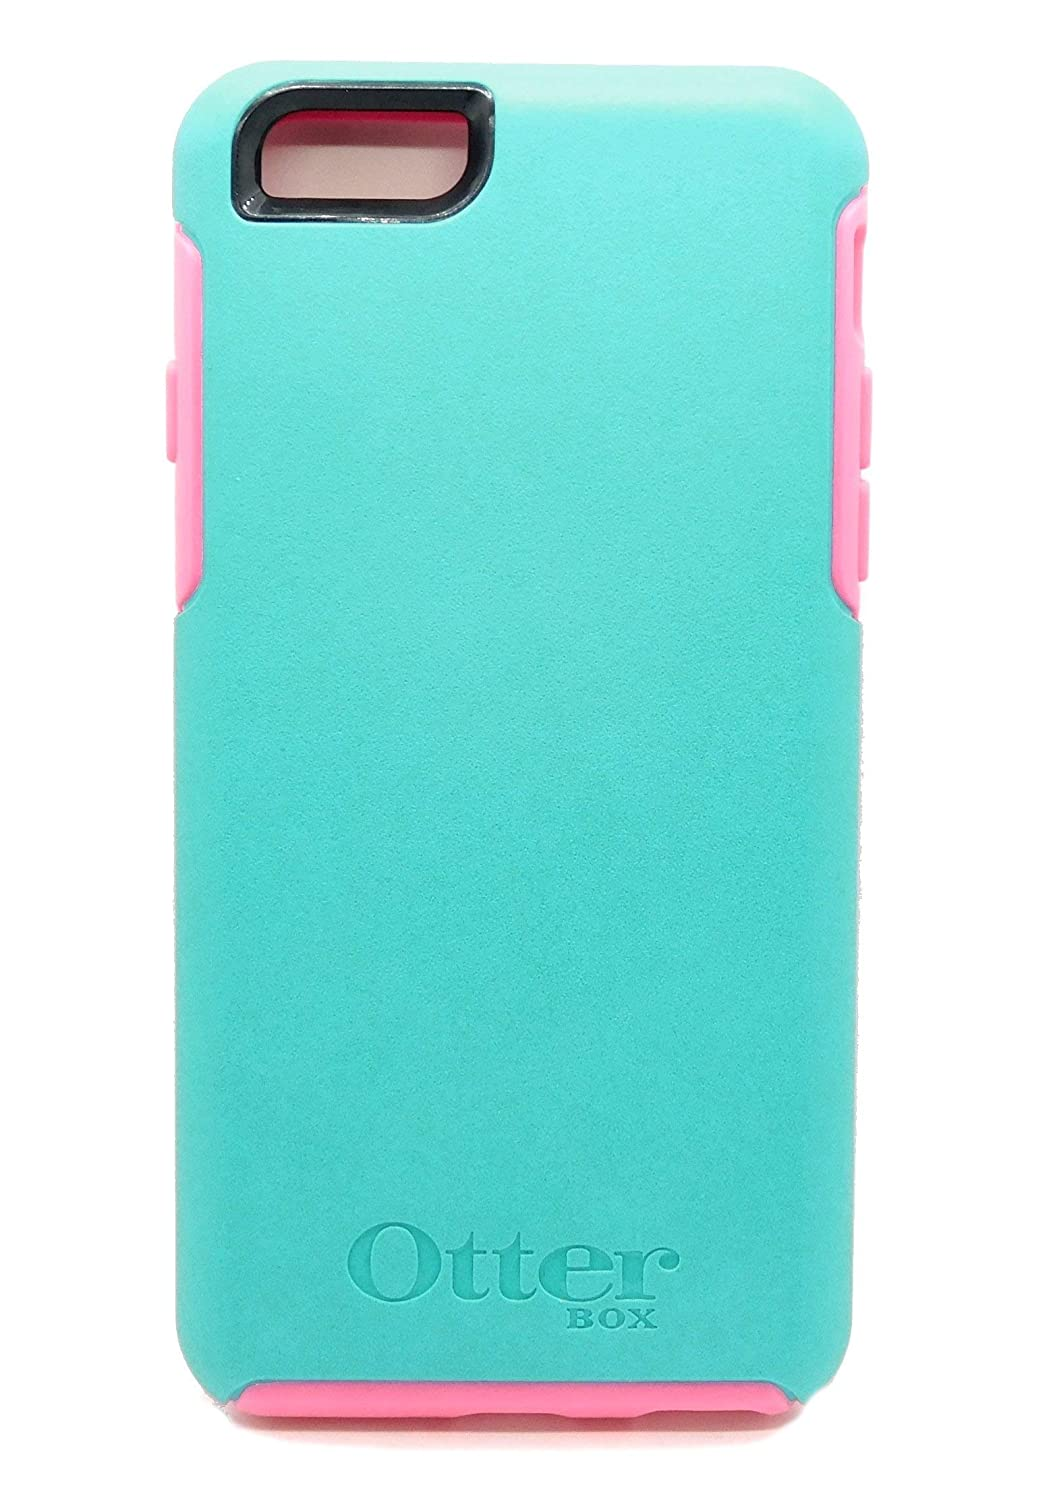 OtterBox SYMMETRY SERIES Case for iPhone 6/iPhone 6s - Retail Packaging - TEAL ROSE II (LIGHT TEAL/BLAZE PINK)